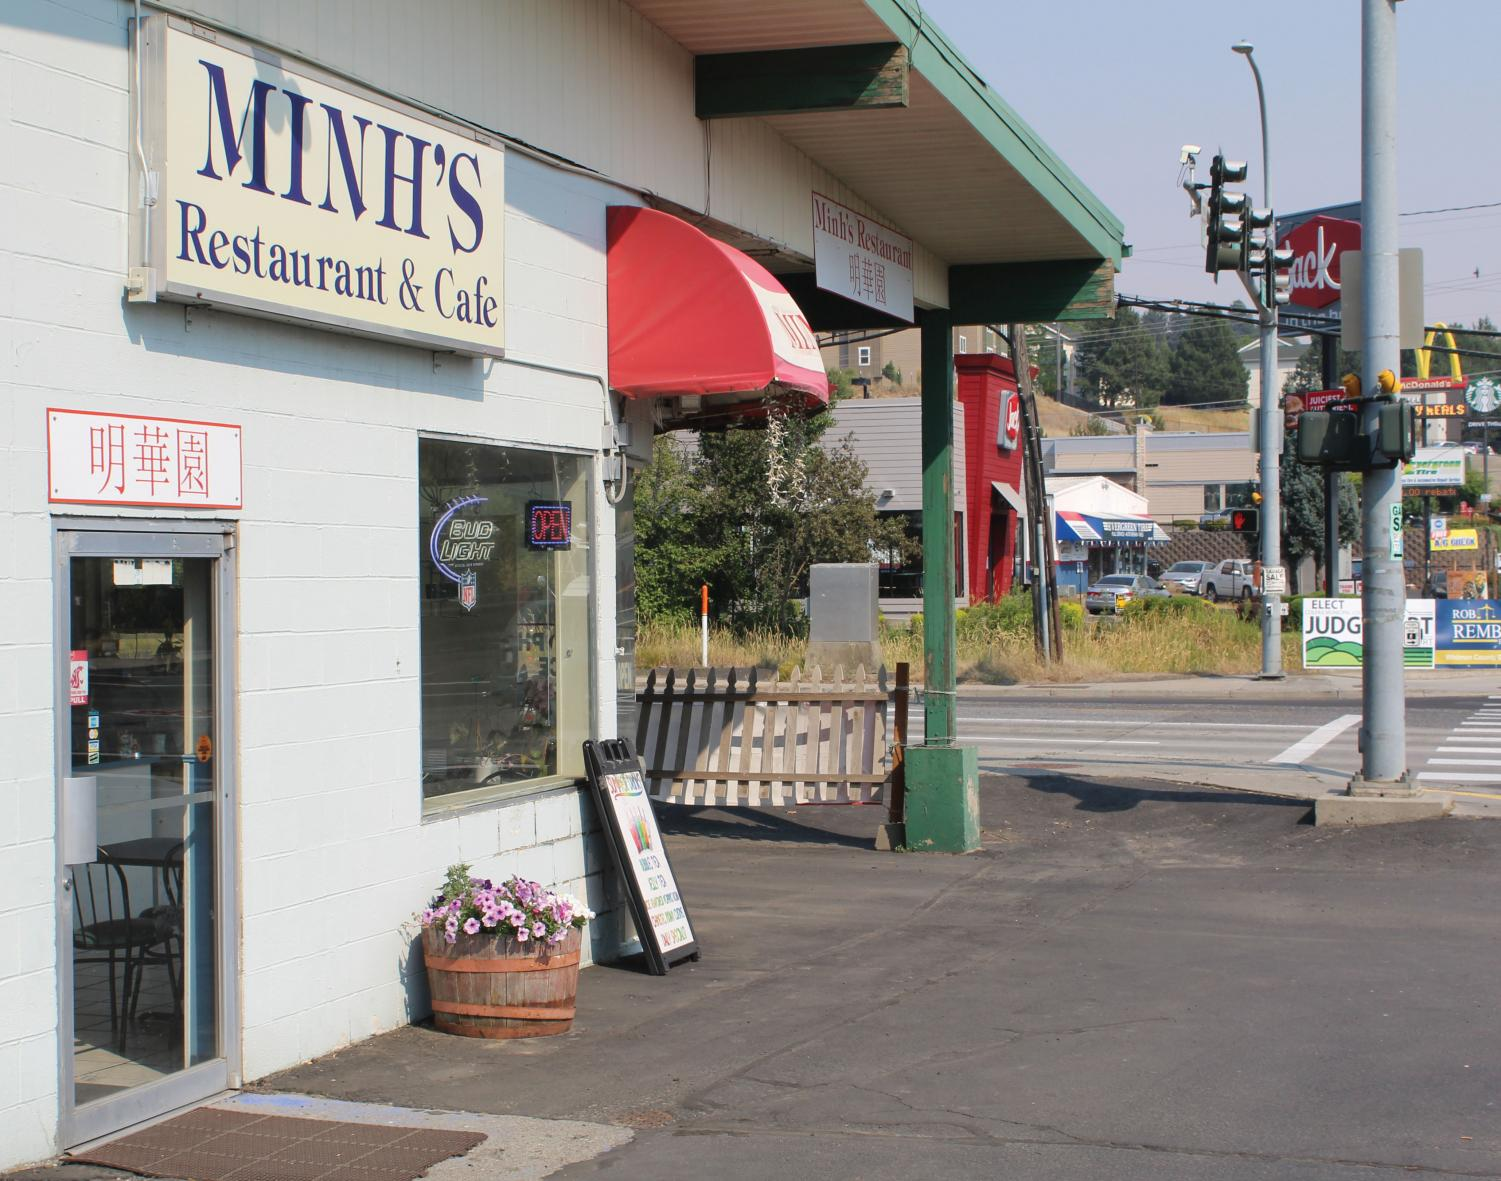 Minh's Restaurant, on the corner of Stadium Way and Grand Avenue, offers a wide variety of Asian cuisine at reasonable prices for the average college student.